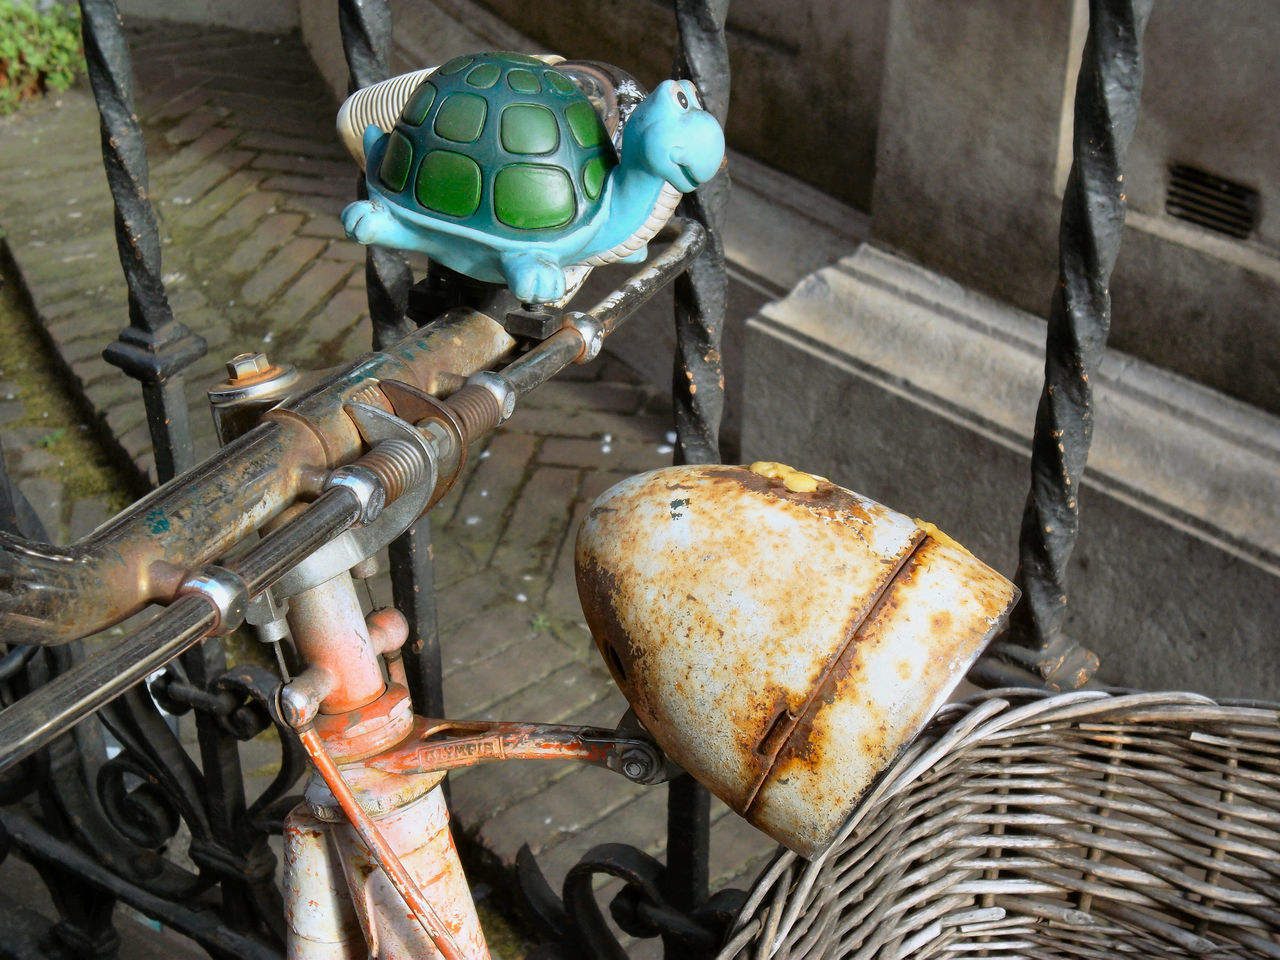 Recycling Of A Squeaky Toy As A Bicycle Bell Bicycle Bicycle Basket Bicycle Parking Bicycle Rack Day Land Vehicle Mode Of Transport No People Outdoors Rusted Rusty Bicycle